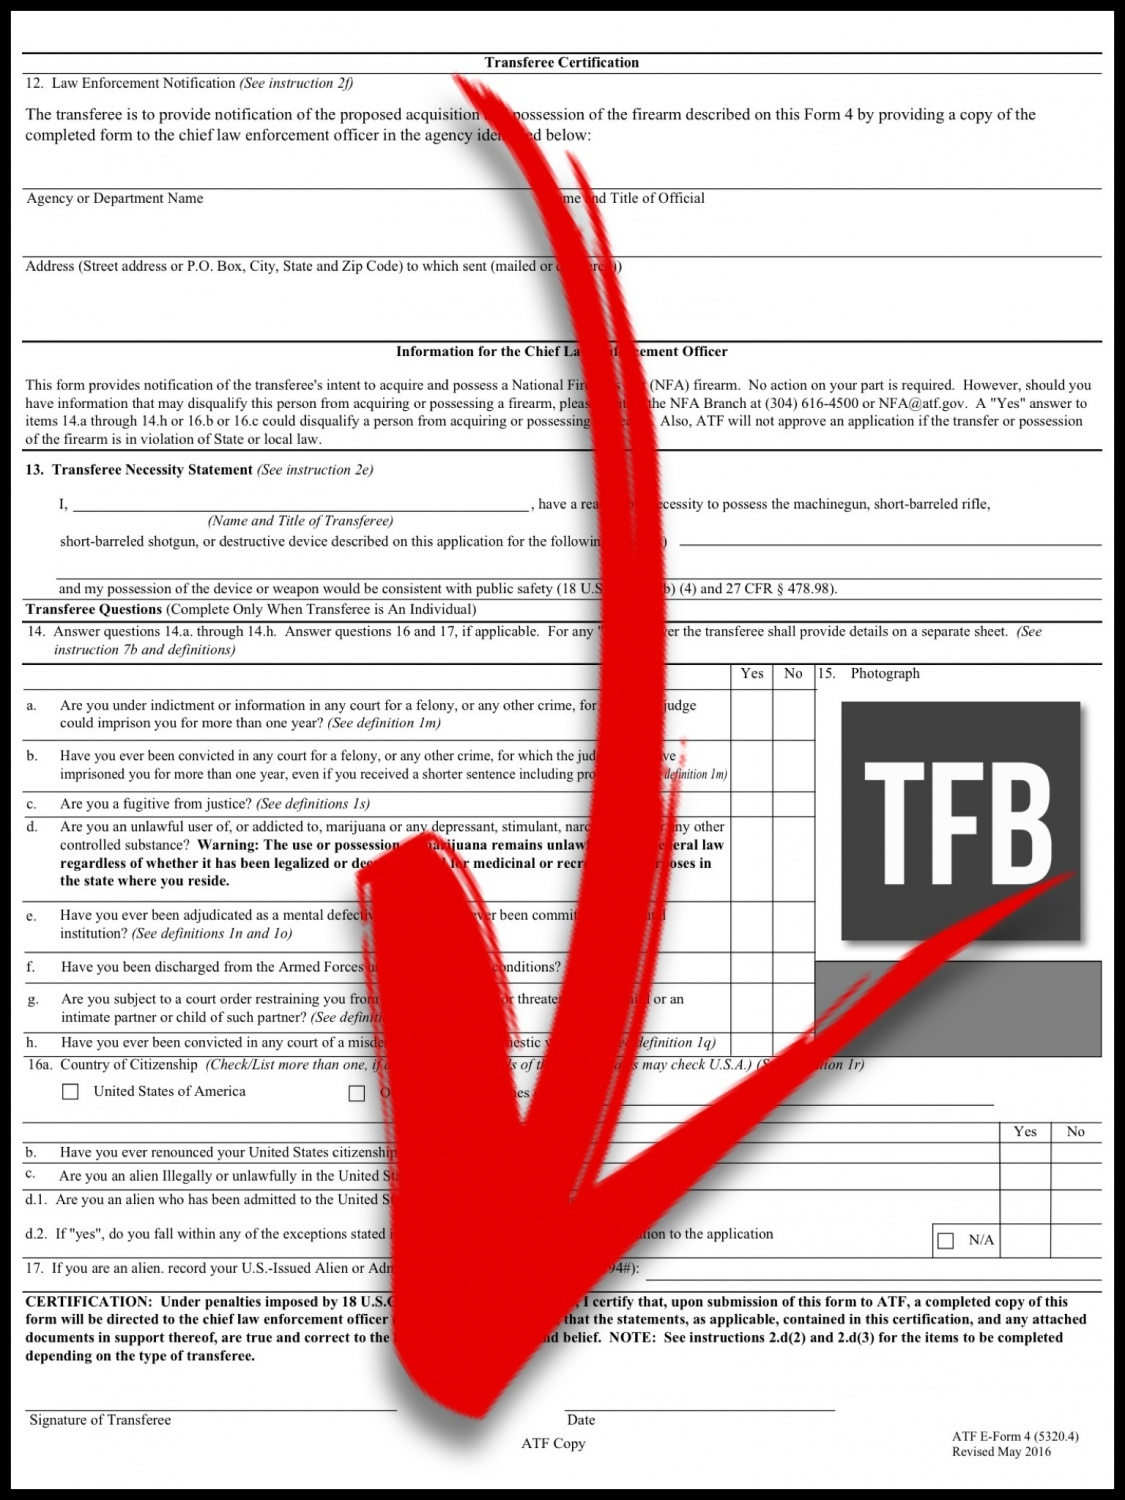 ATF forms